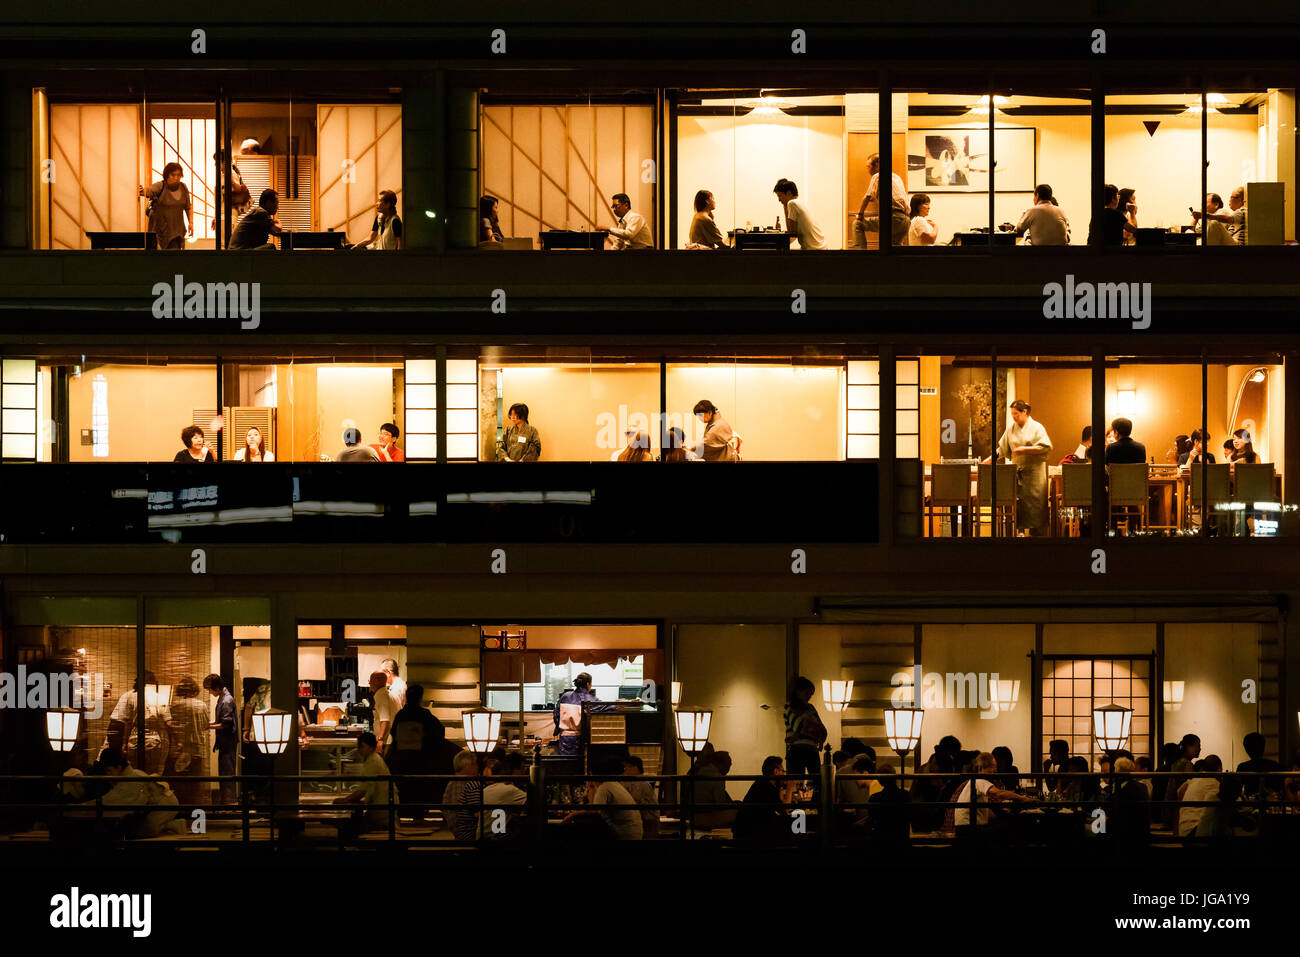 Multi-layered restaurant on the banks of The Kamo River (Kamo-gawa), with people dining, in traditional clothing, - Stock Image